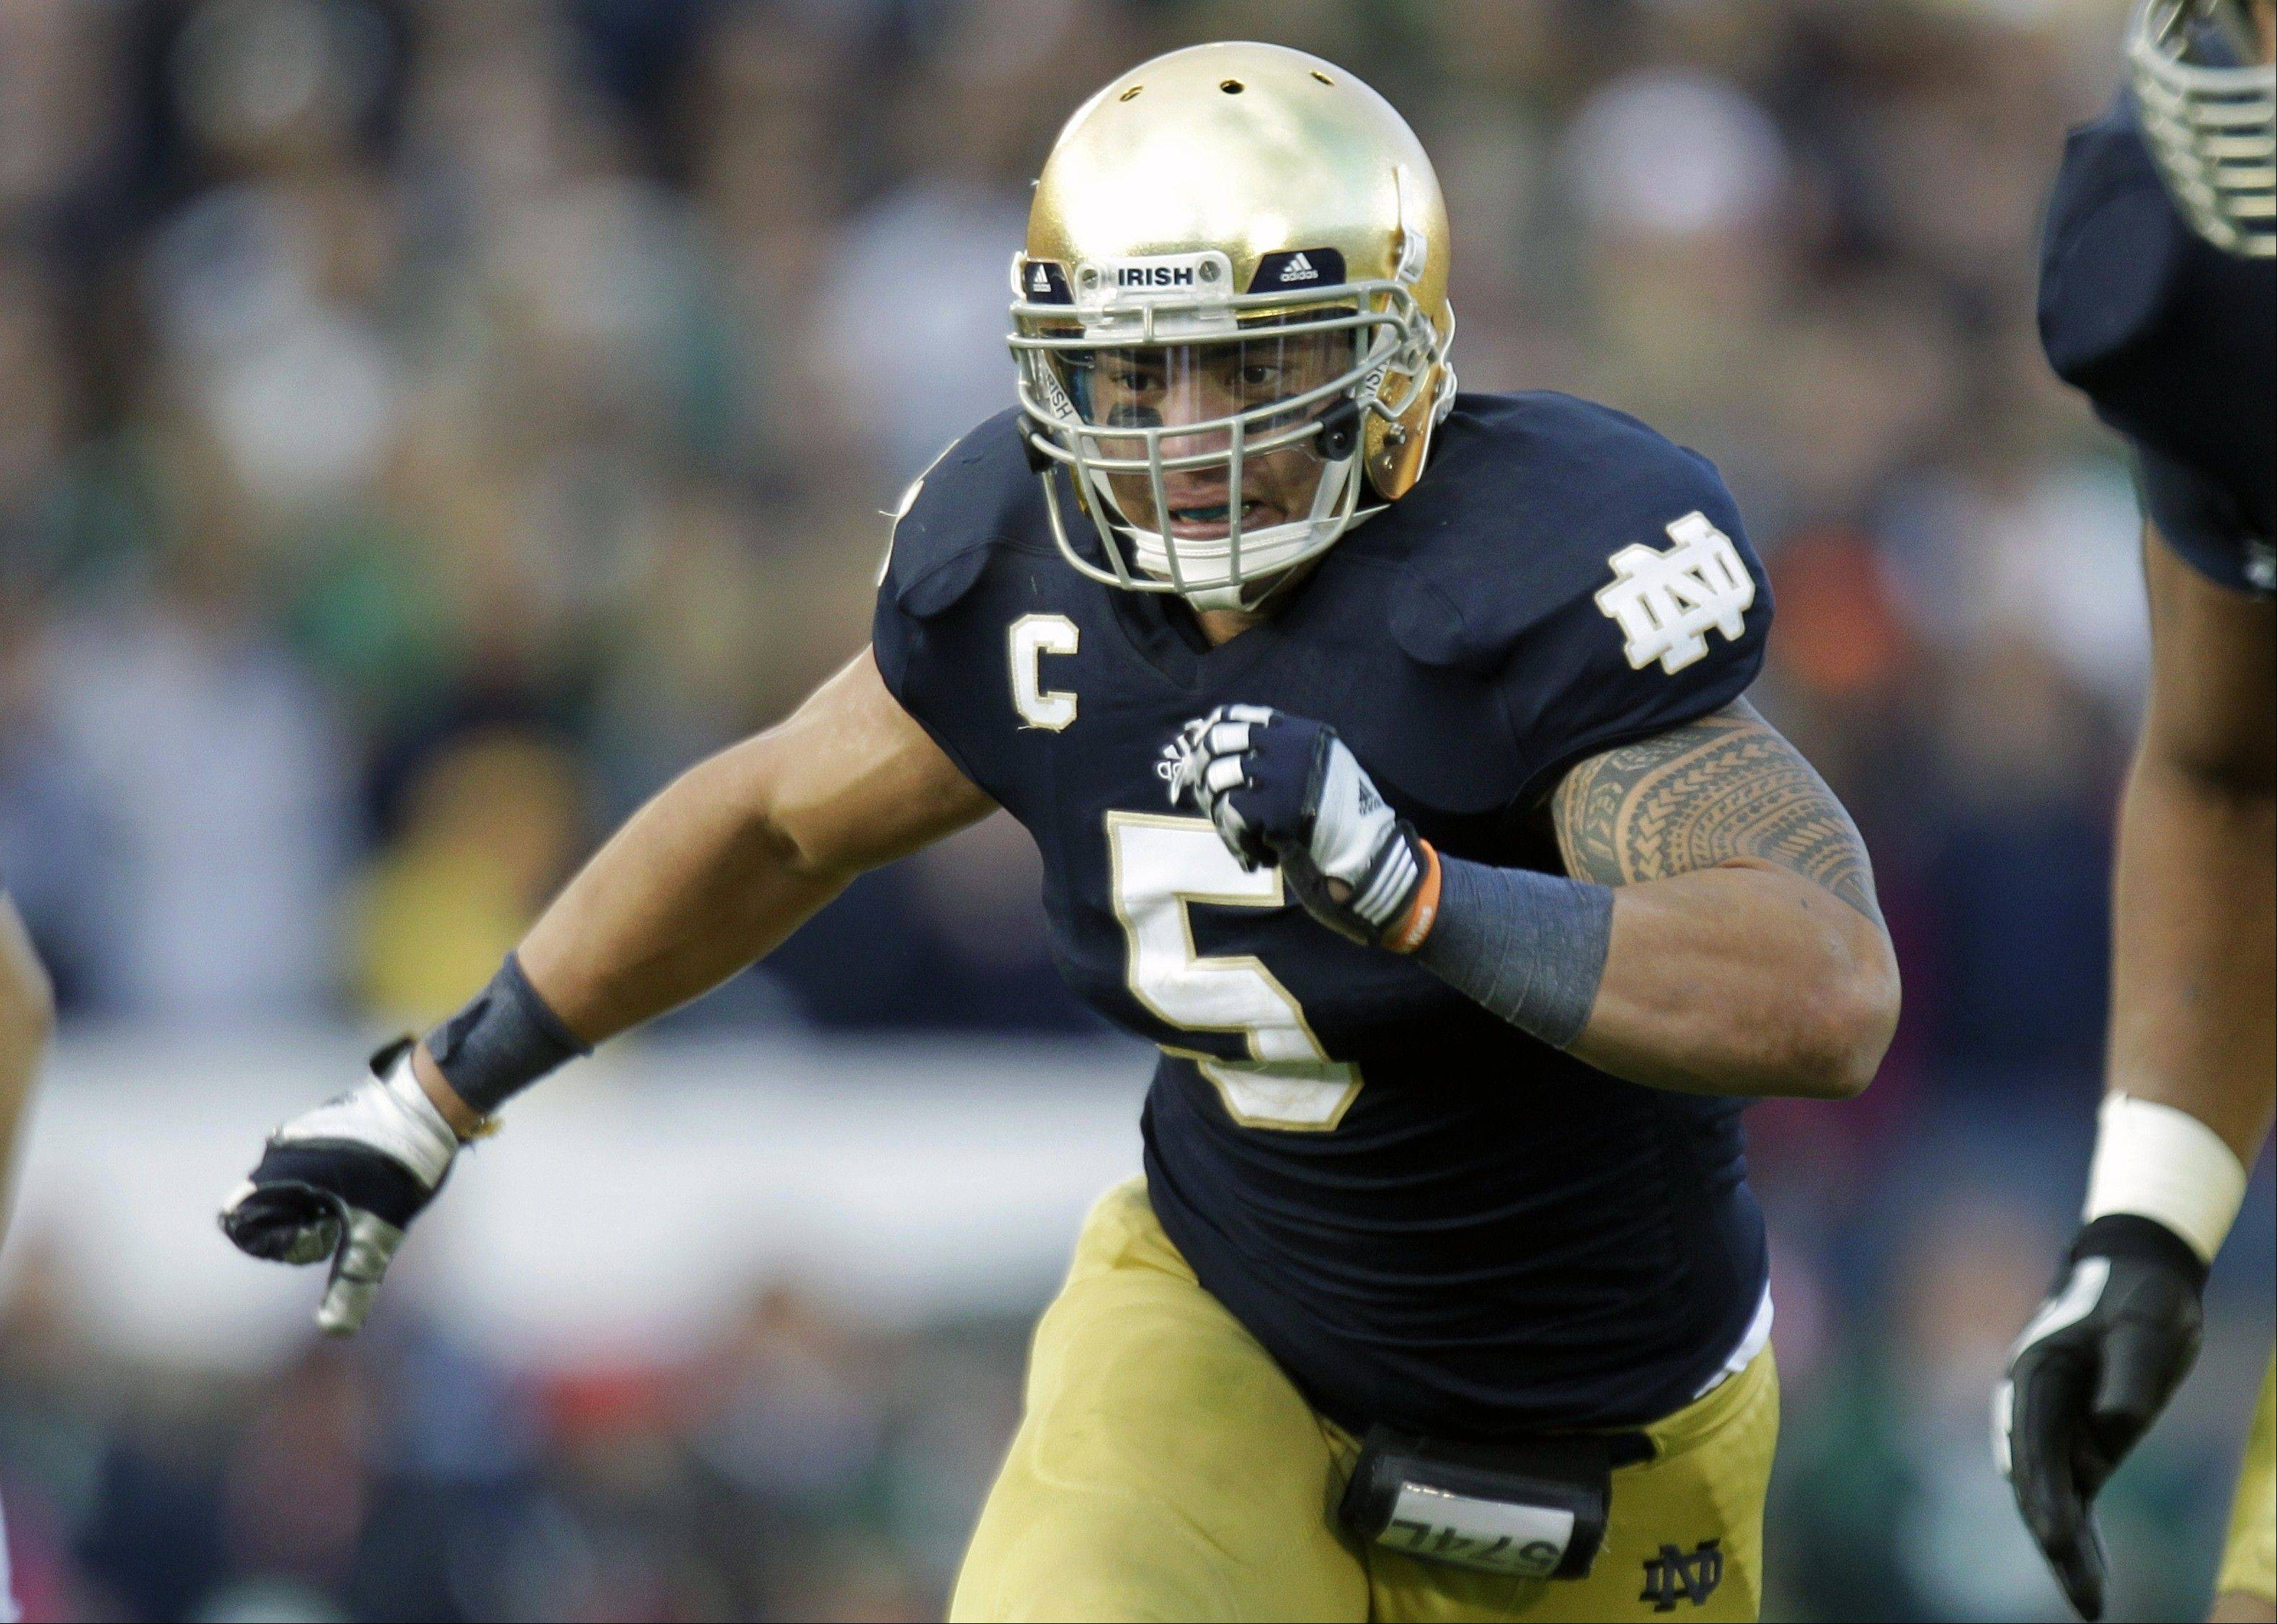 Notre Dame linebacker Manti Te'o plays against BYU earlier this eason. Alabama's Barrett Jones and Notre Dame's Te'o are All-Americans and national award winners. They're also fine students who emphasize faith and postponed big money from the NFL to stay in school.